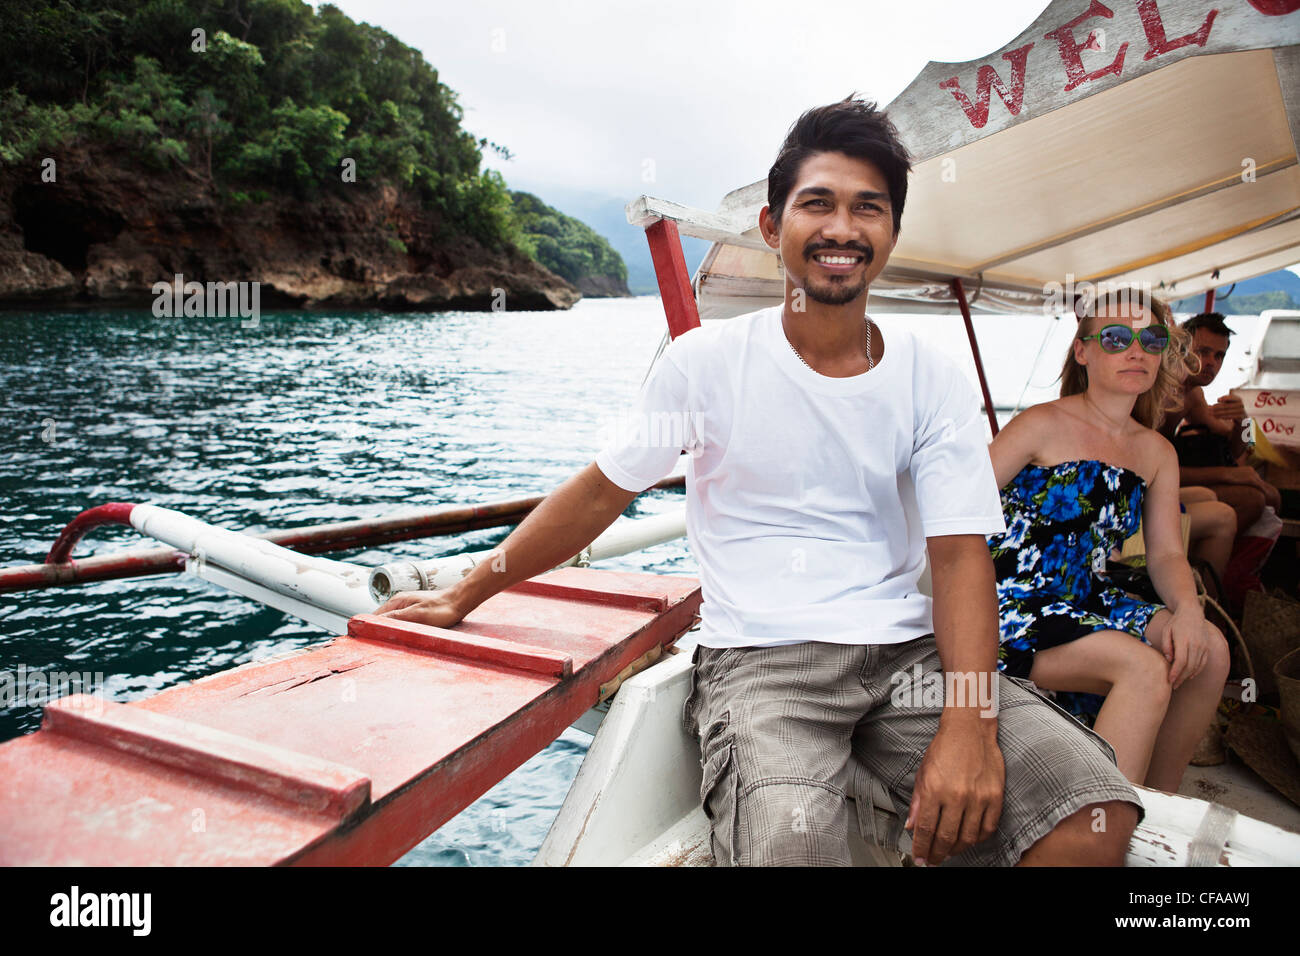 Man on tour boat in tropical waters - Stock Image